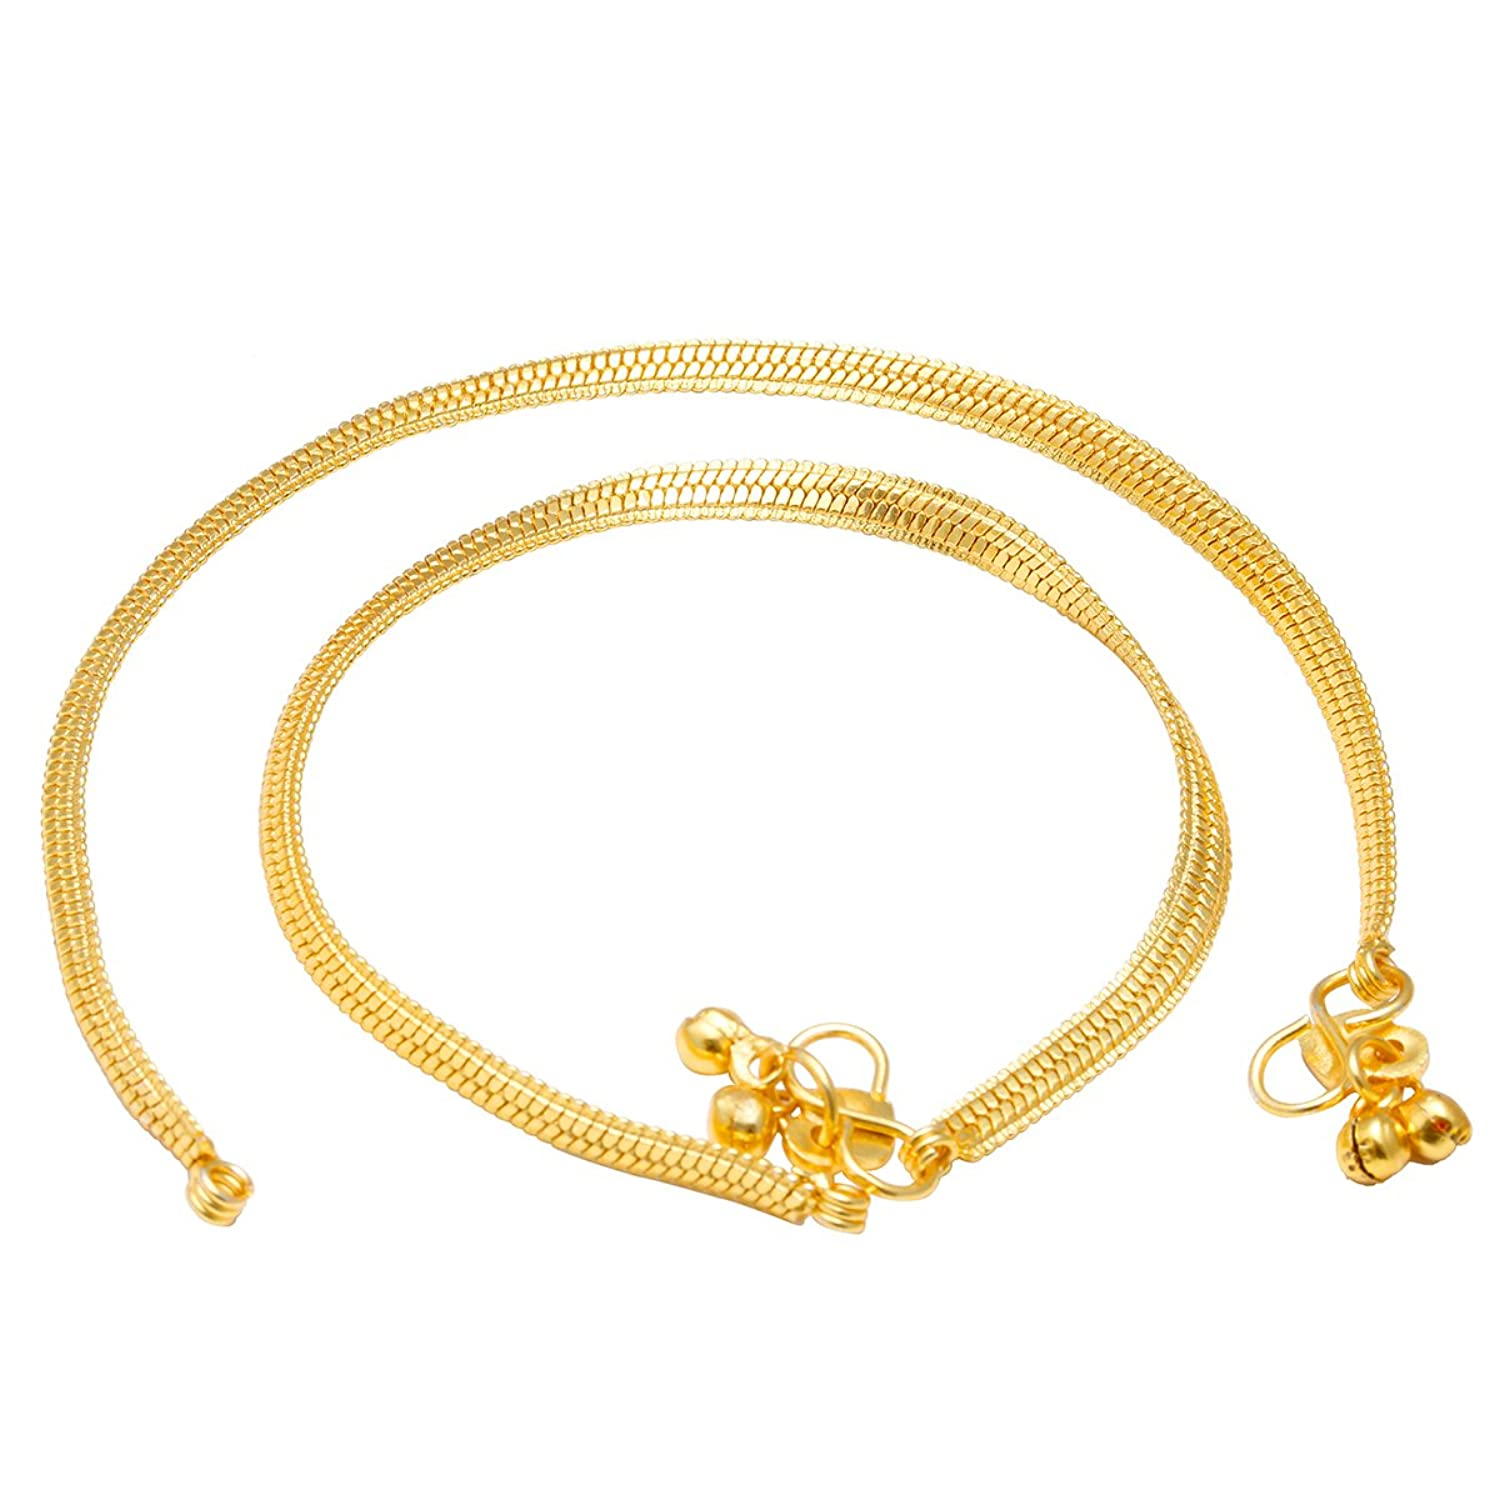 chain store online design plated for low buy amazon ghungroo in gold women at dp memoir prices india jewellery anklet flat designer snake